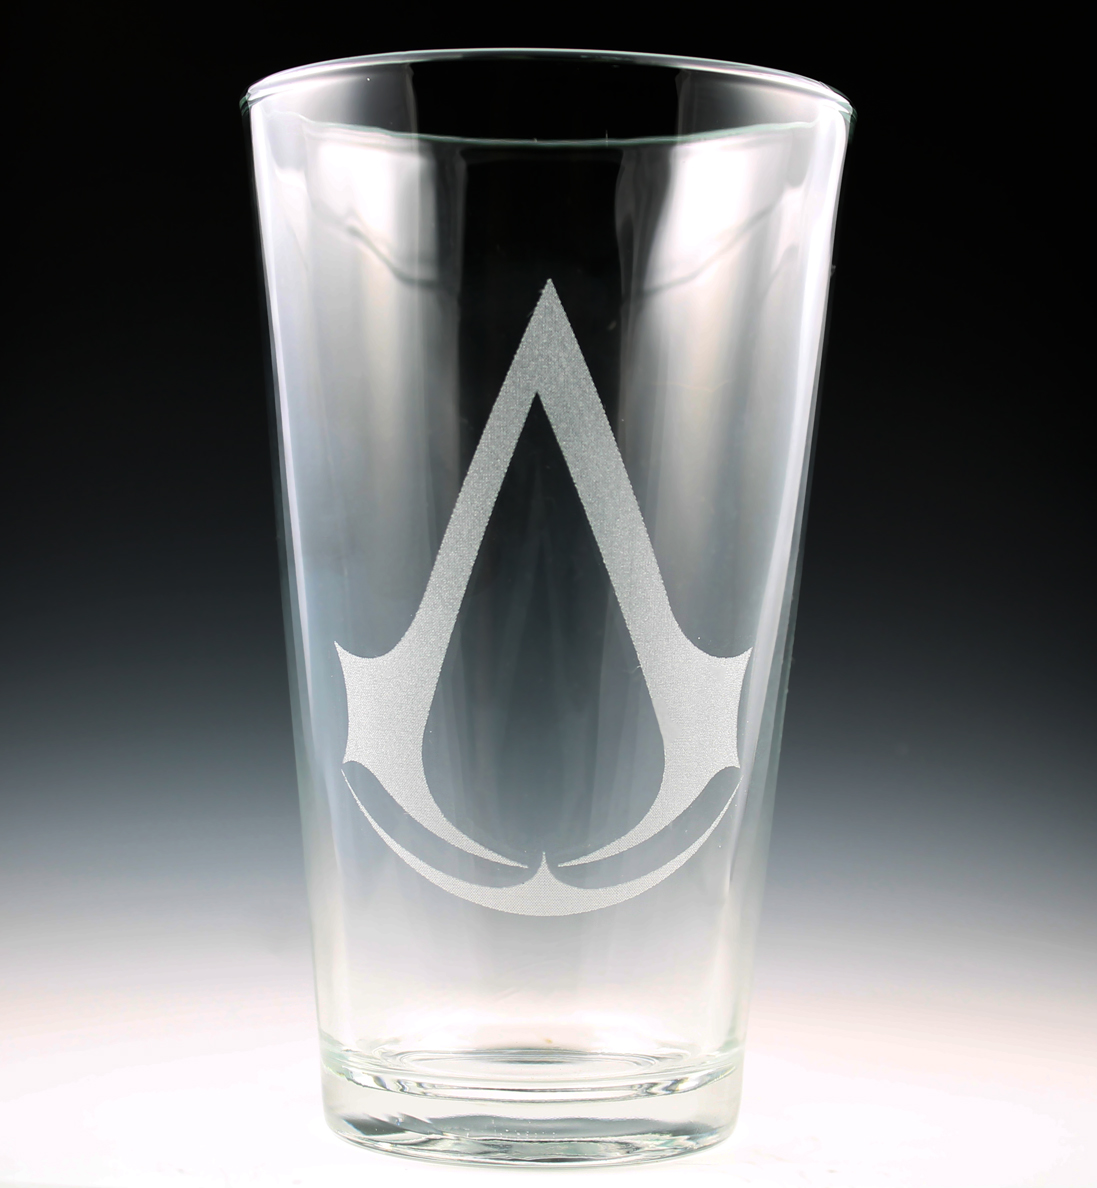 Assassin's Creed Pint Glass by Yukizeal